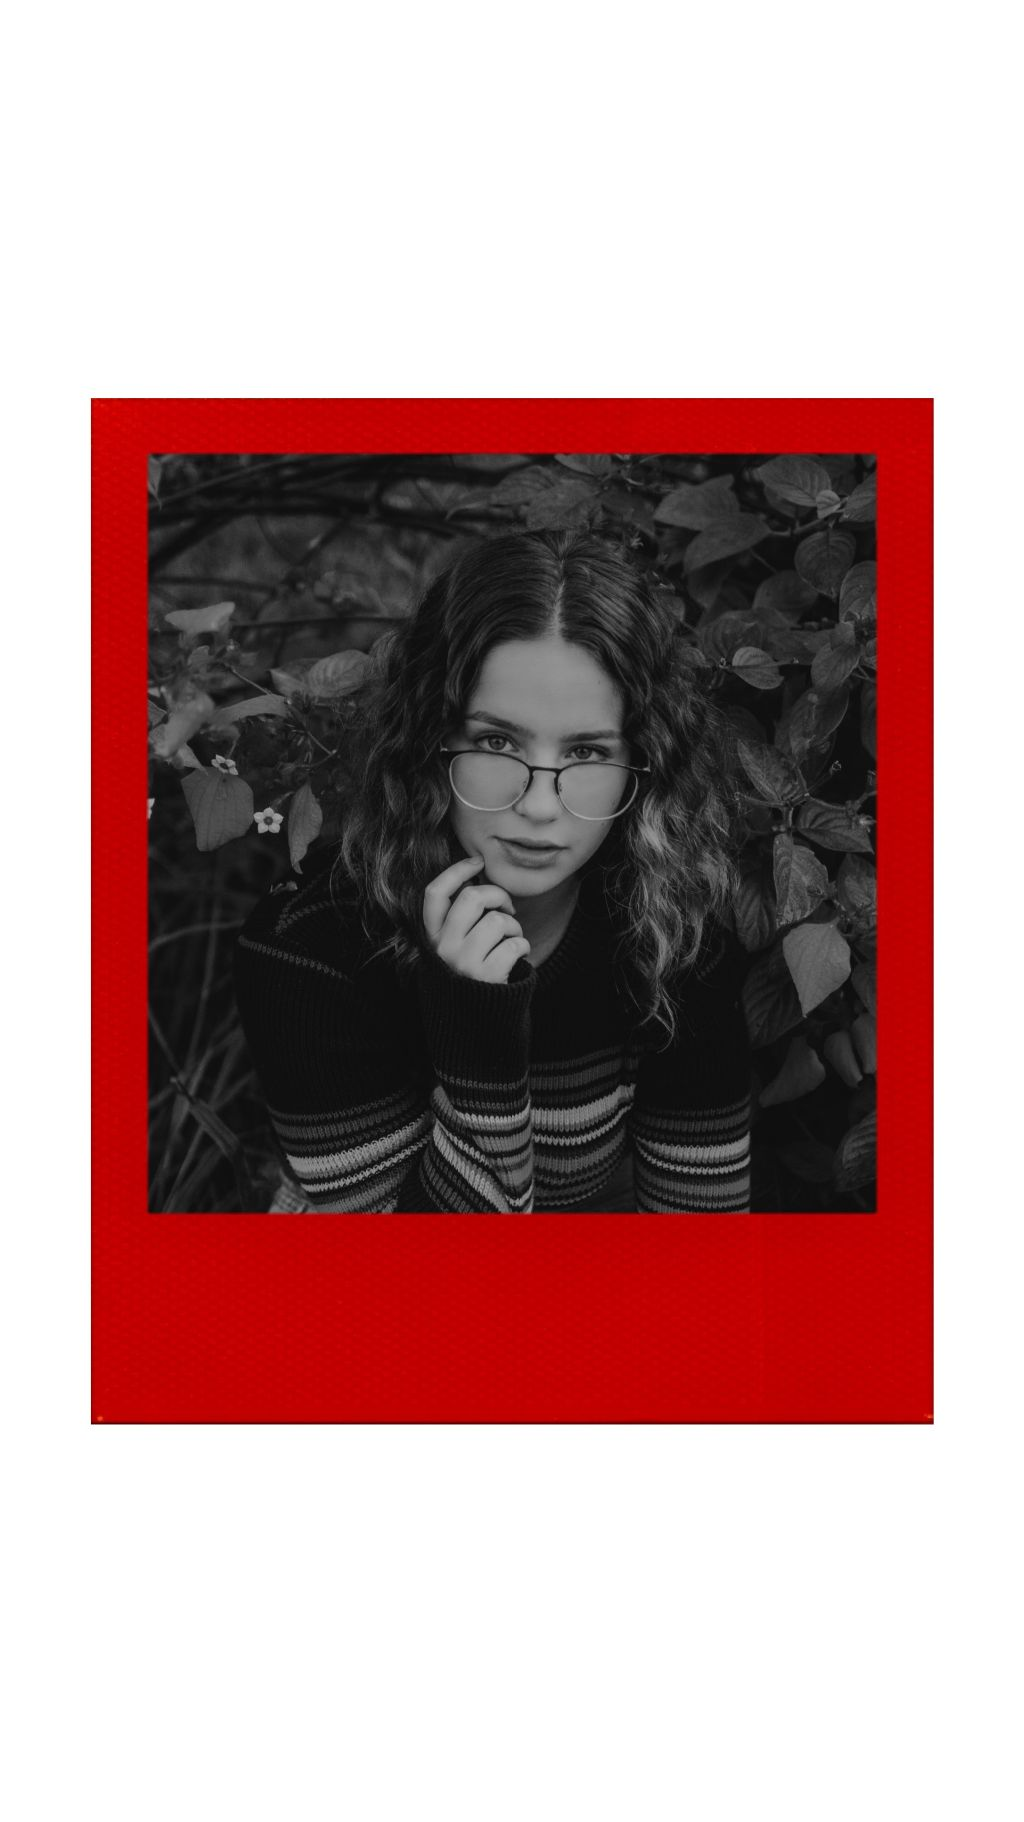 #girl #polaroid #red #redpolaroid #story #blackandwhite  #freetoedit